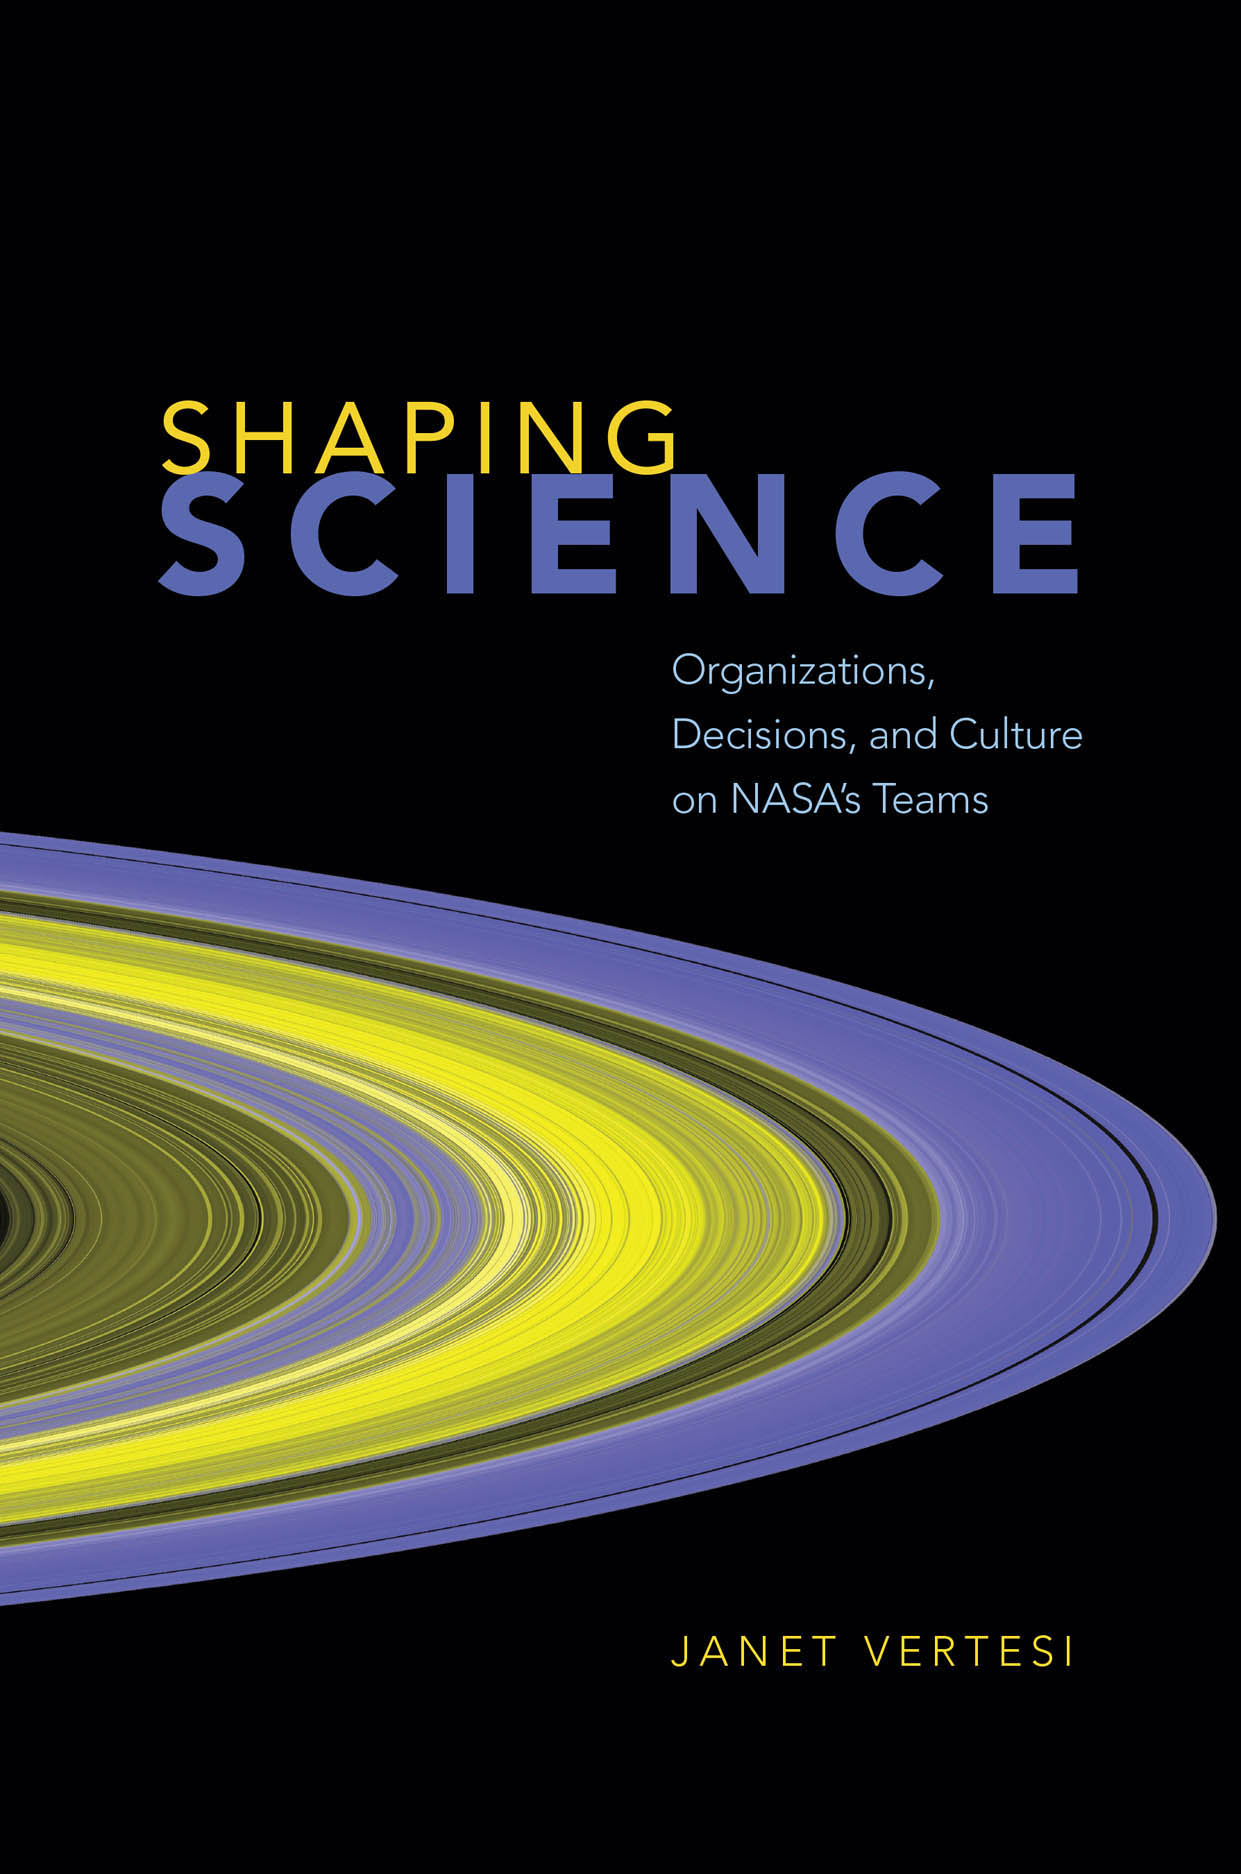 Shaping Science: Organizations, Decisions, and Culture on NASA's Teams